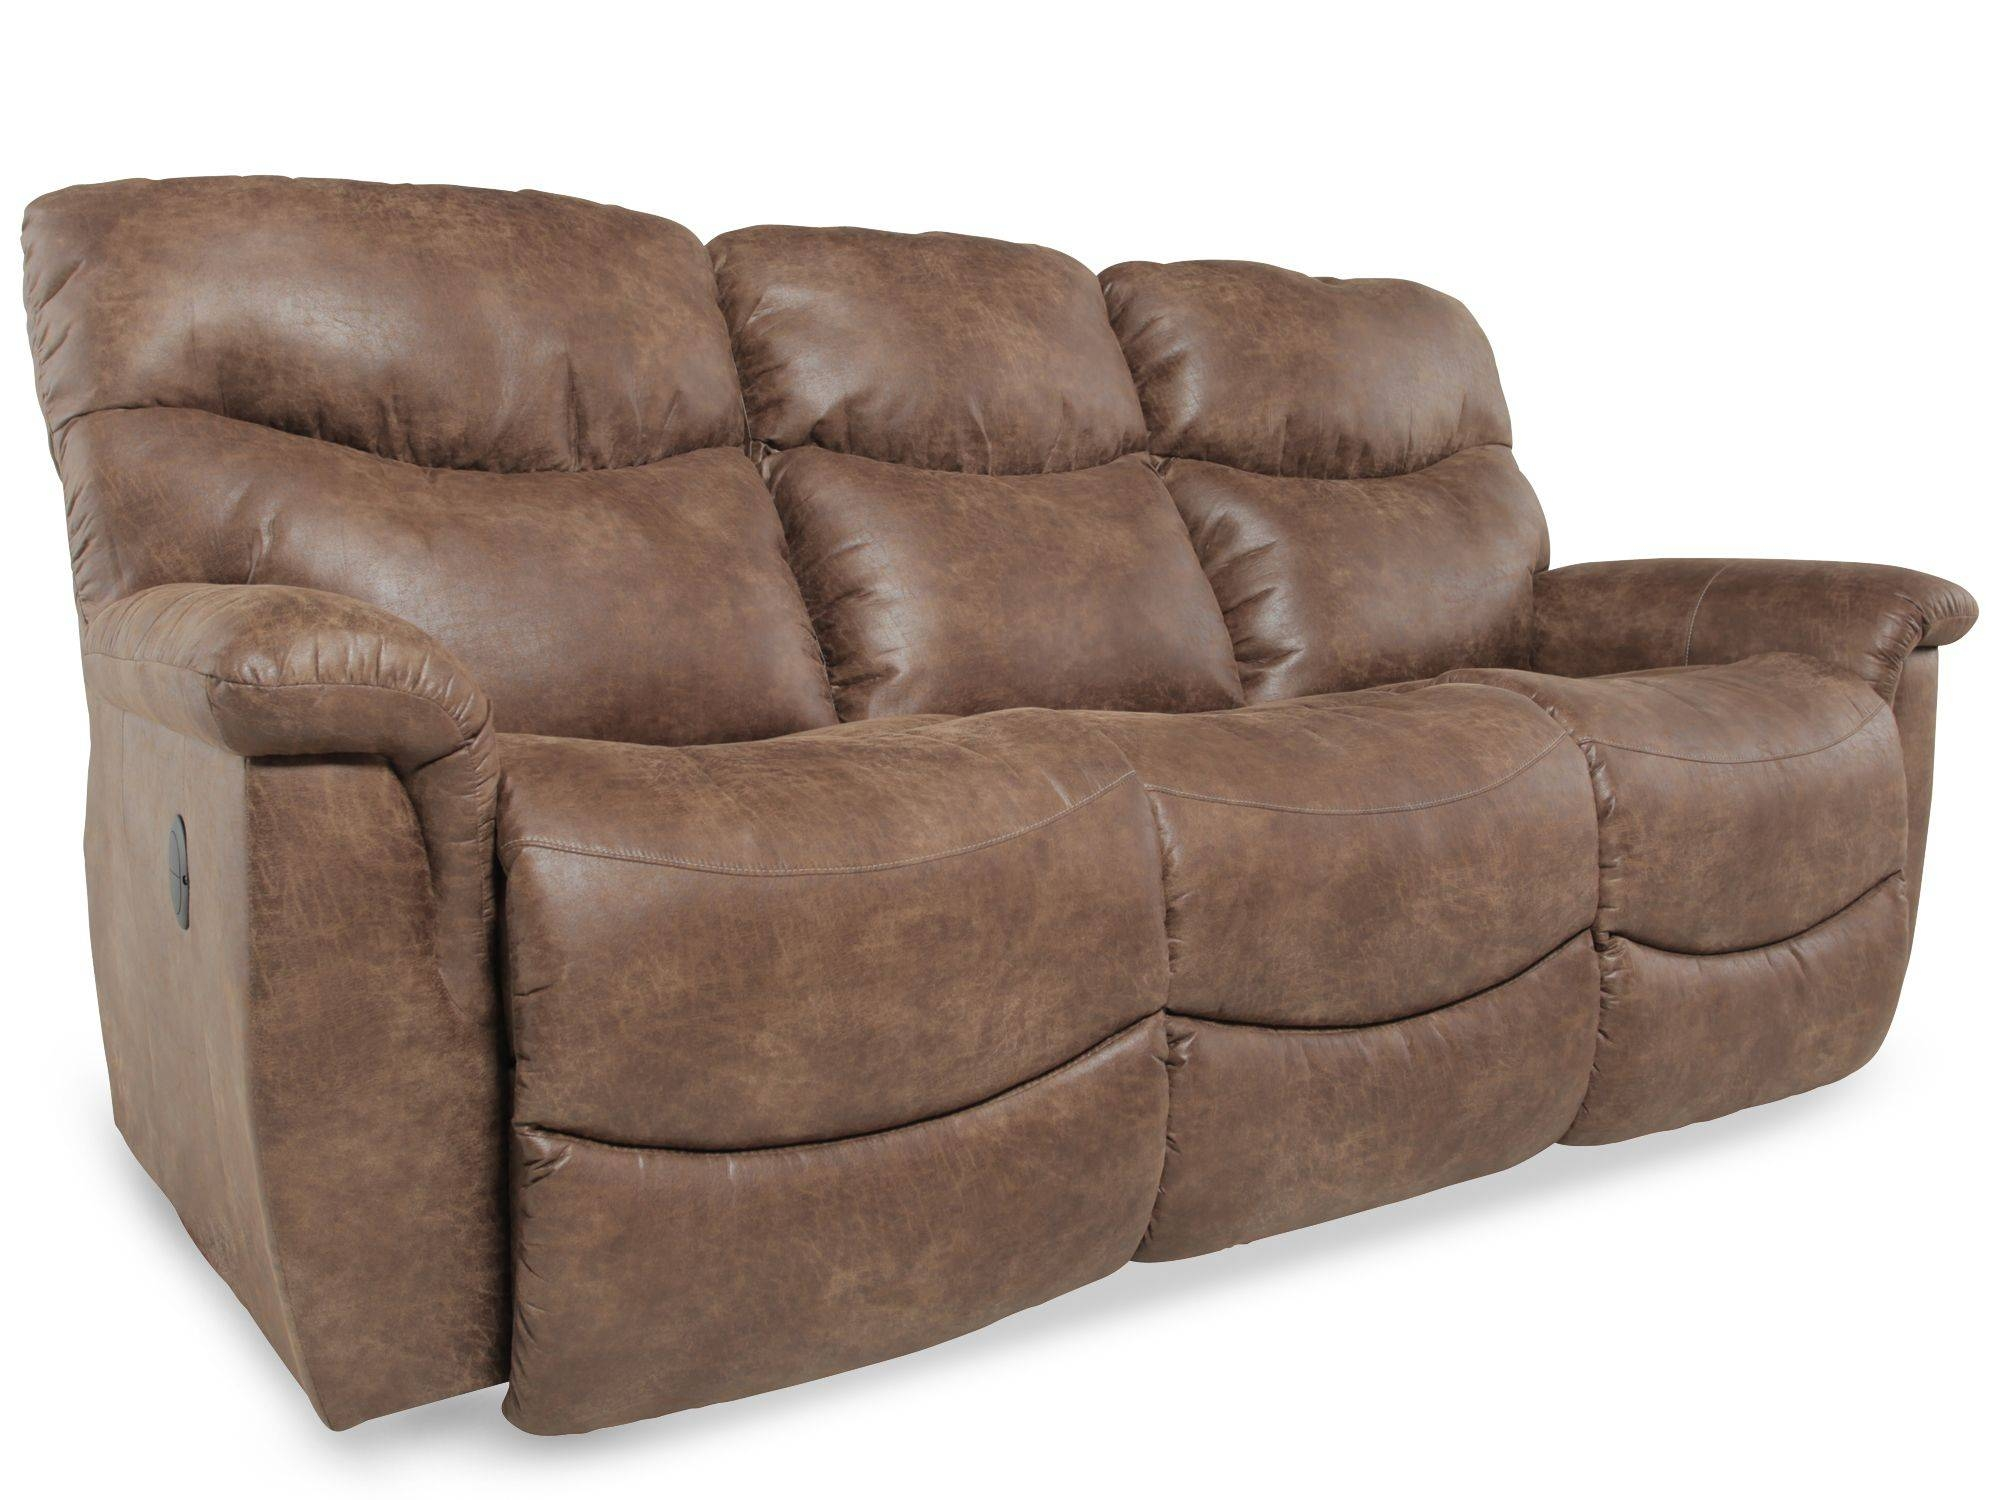 Sofa : Finding The Right Choice Of Lazy Boy Sectional Sofas House in Very Large Sofas (Image 14 of 30)